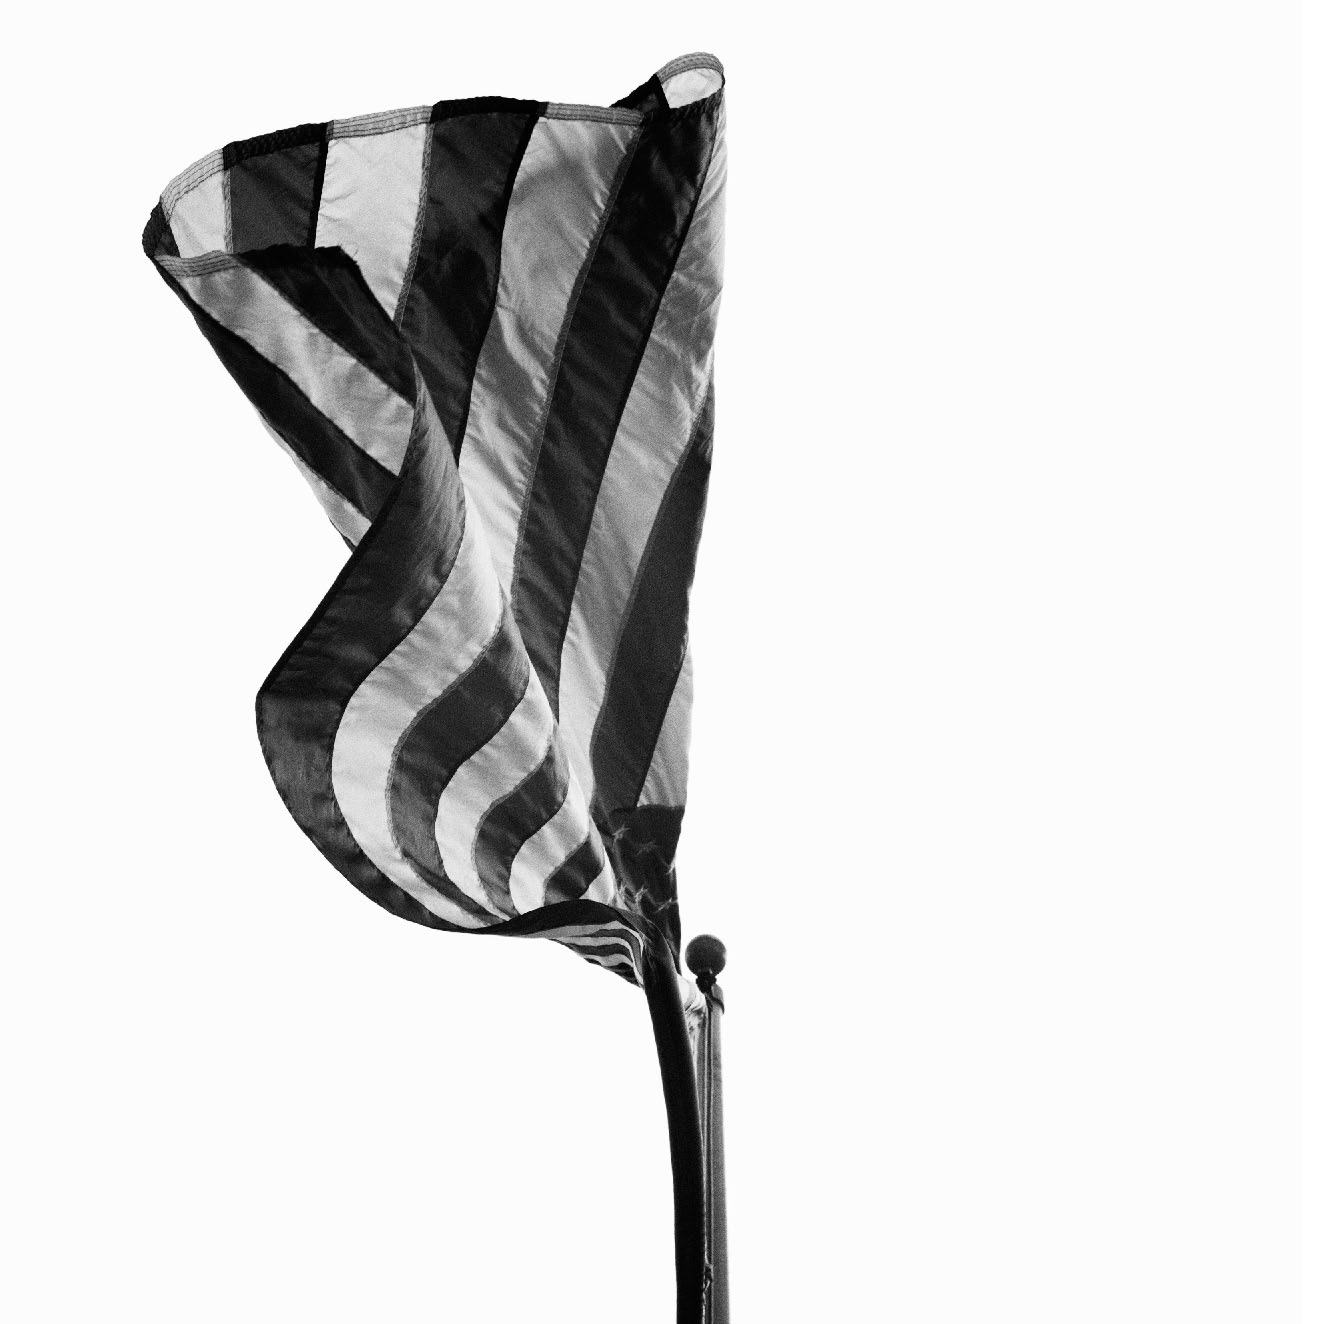 flags_Page_09_Image_0001.jpg